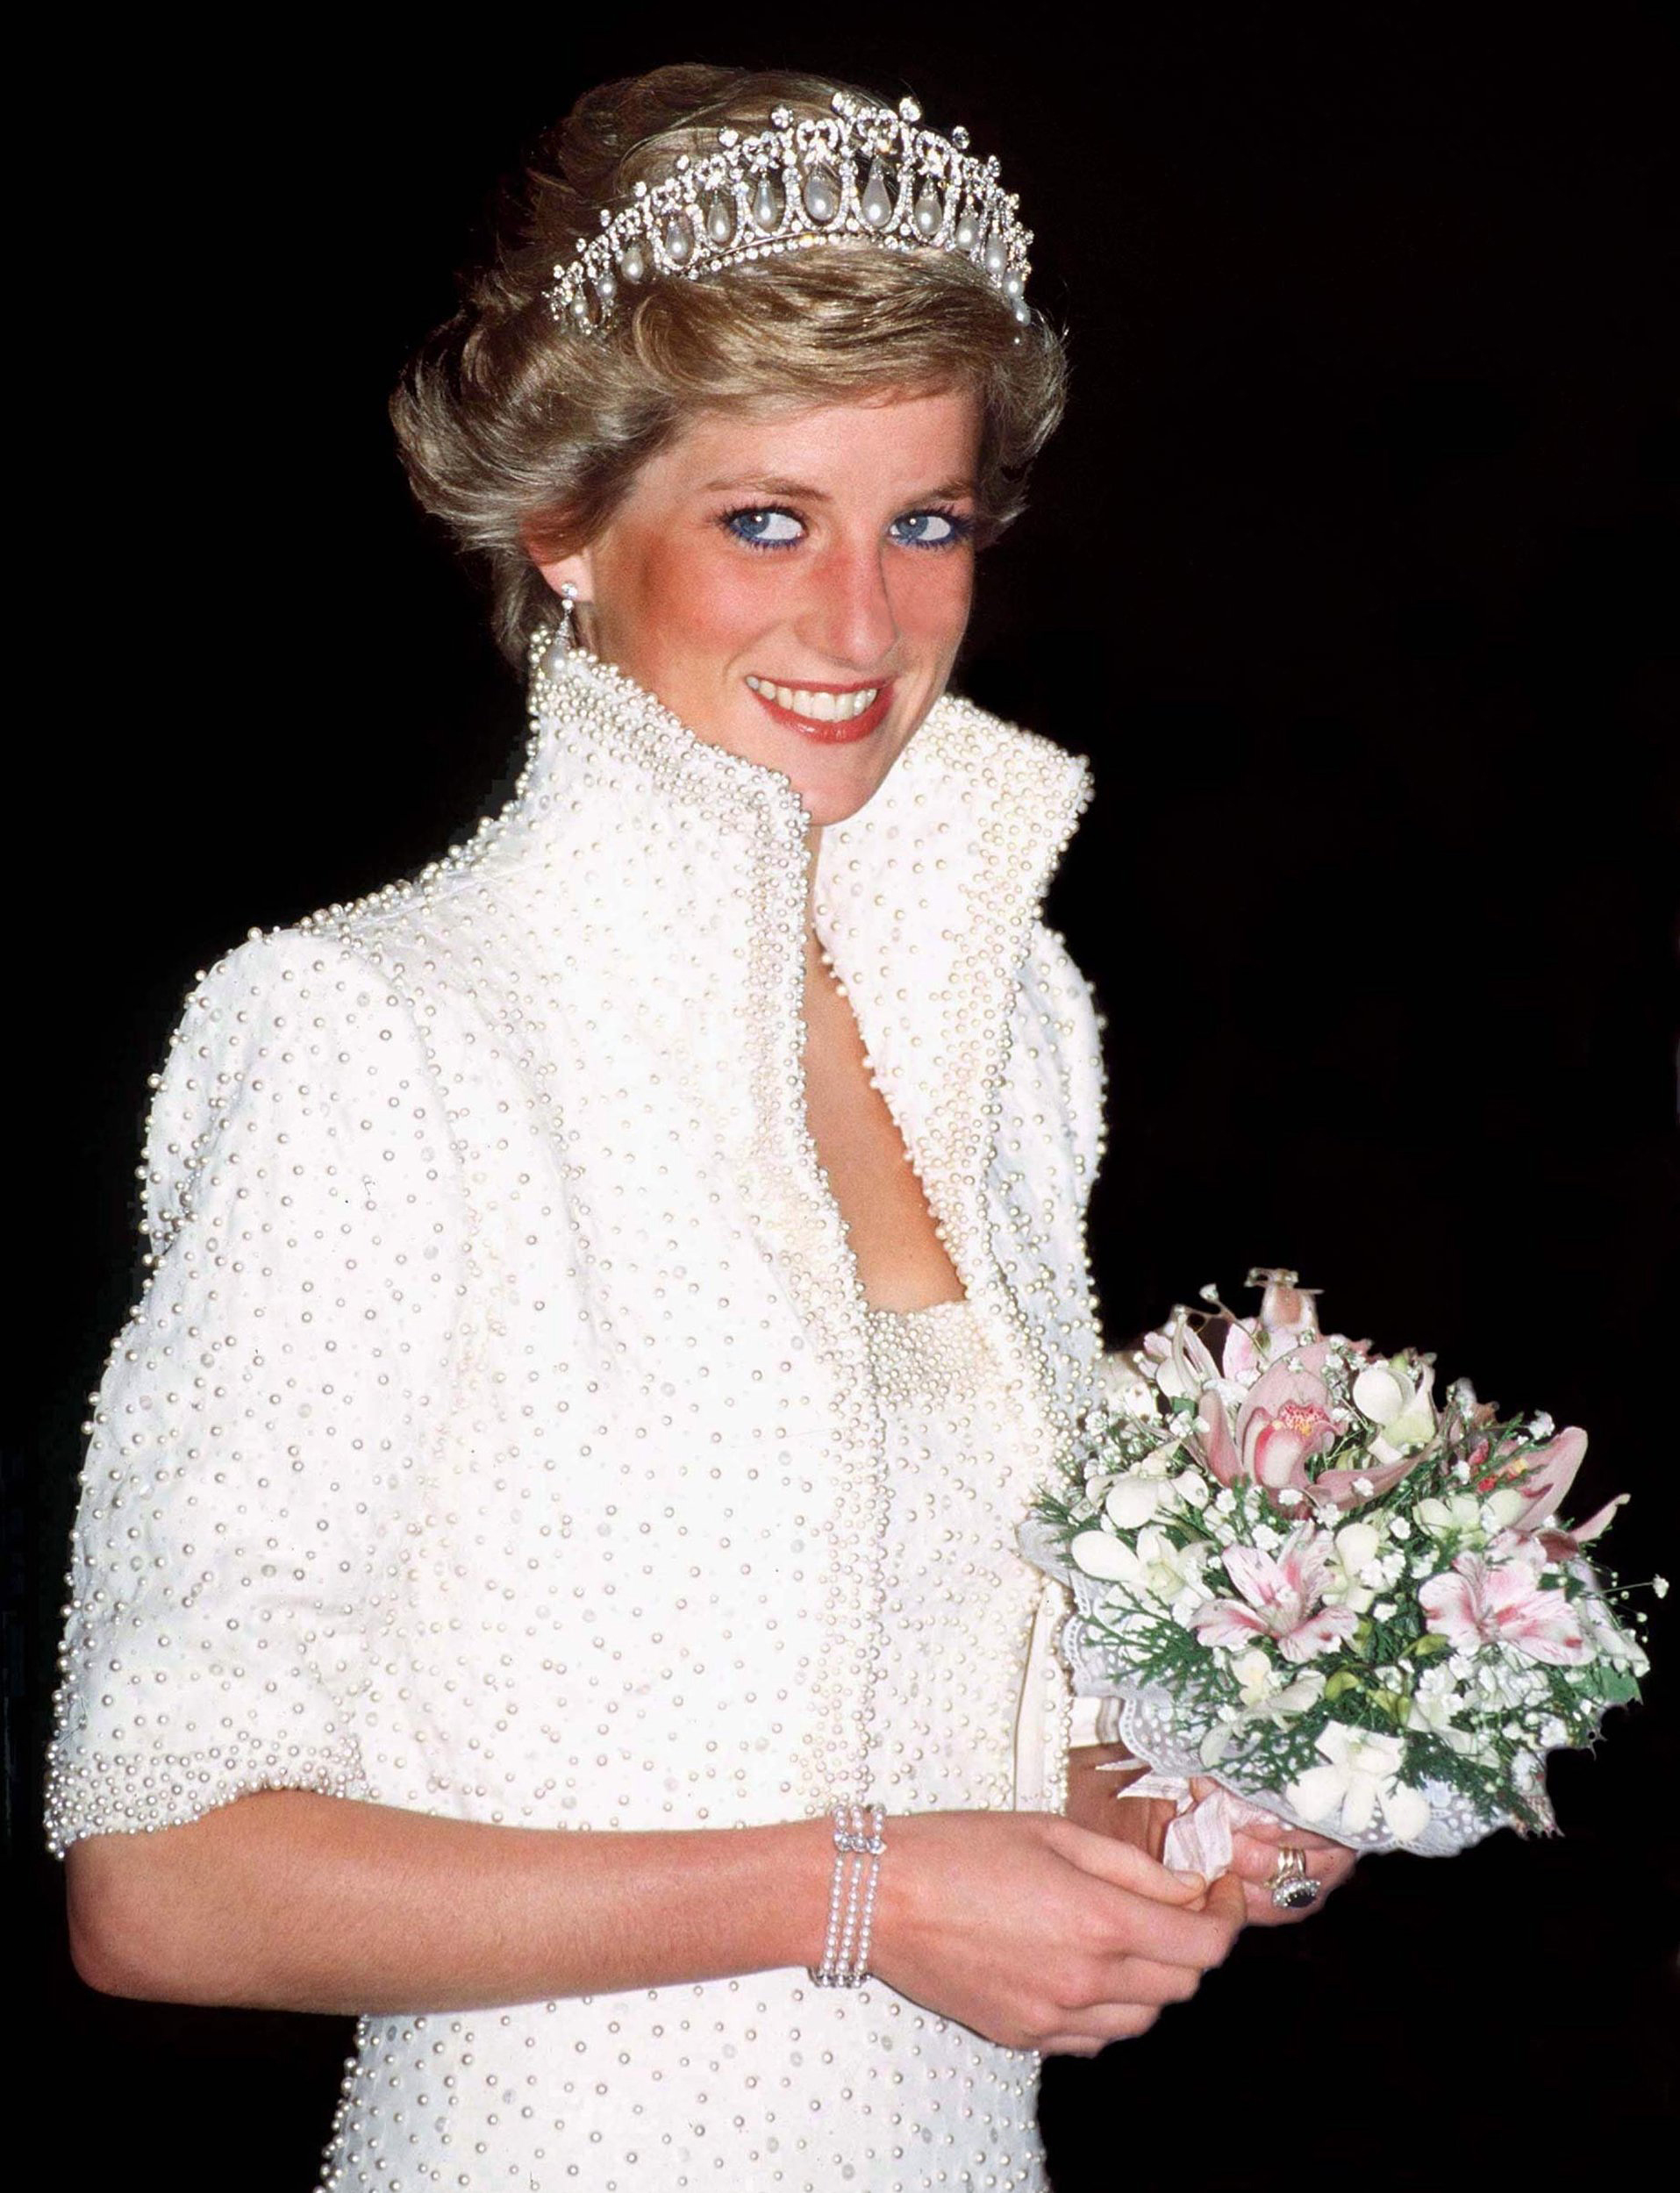 Remembering The Life Of Princess Diana